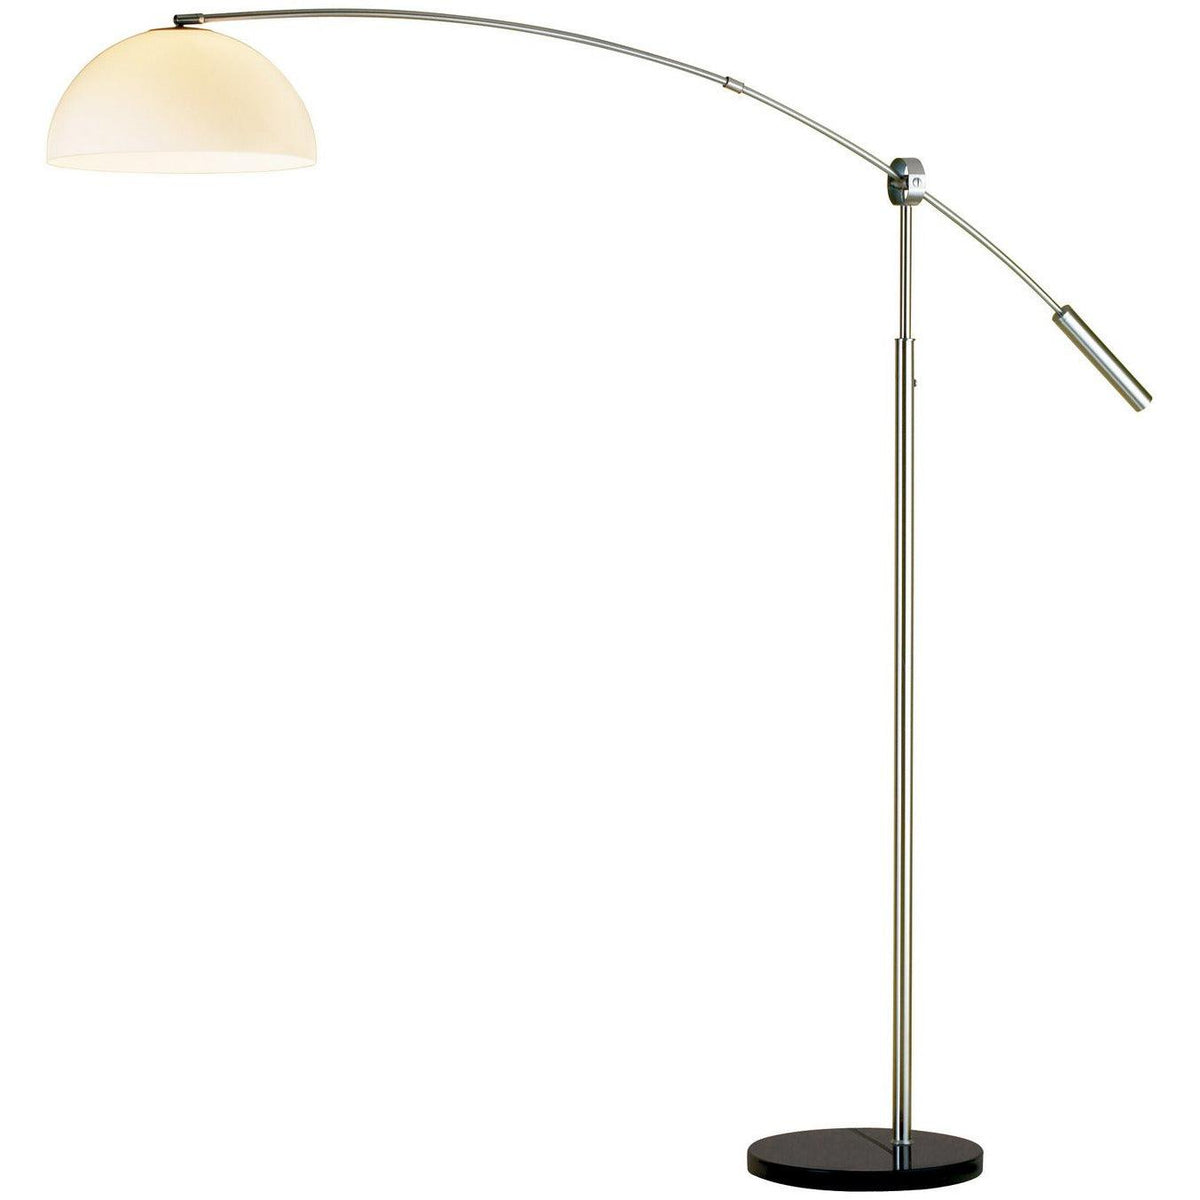 Adesso Home - 4134-22 - One Light Floor Lamp - Outreach - Brushed Steel